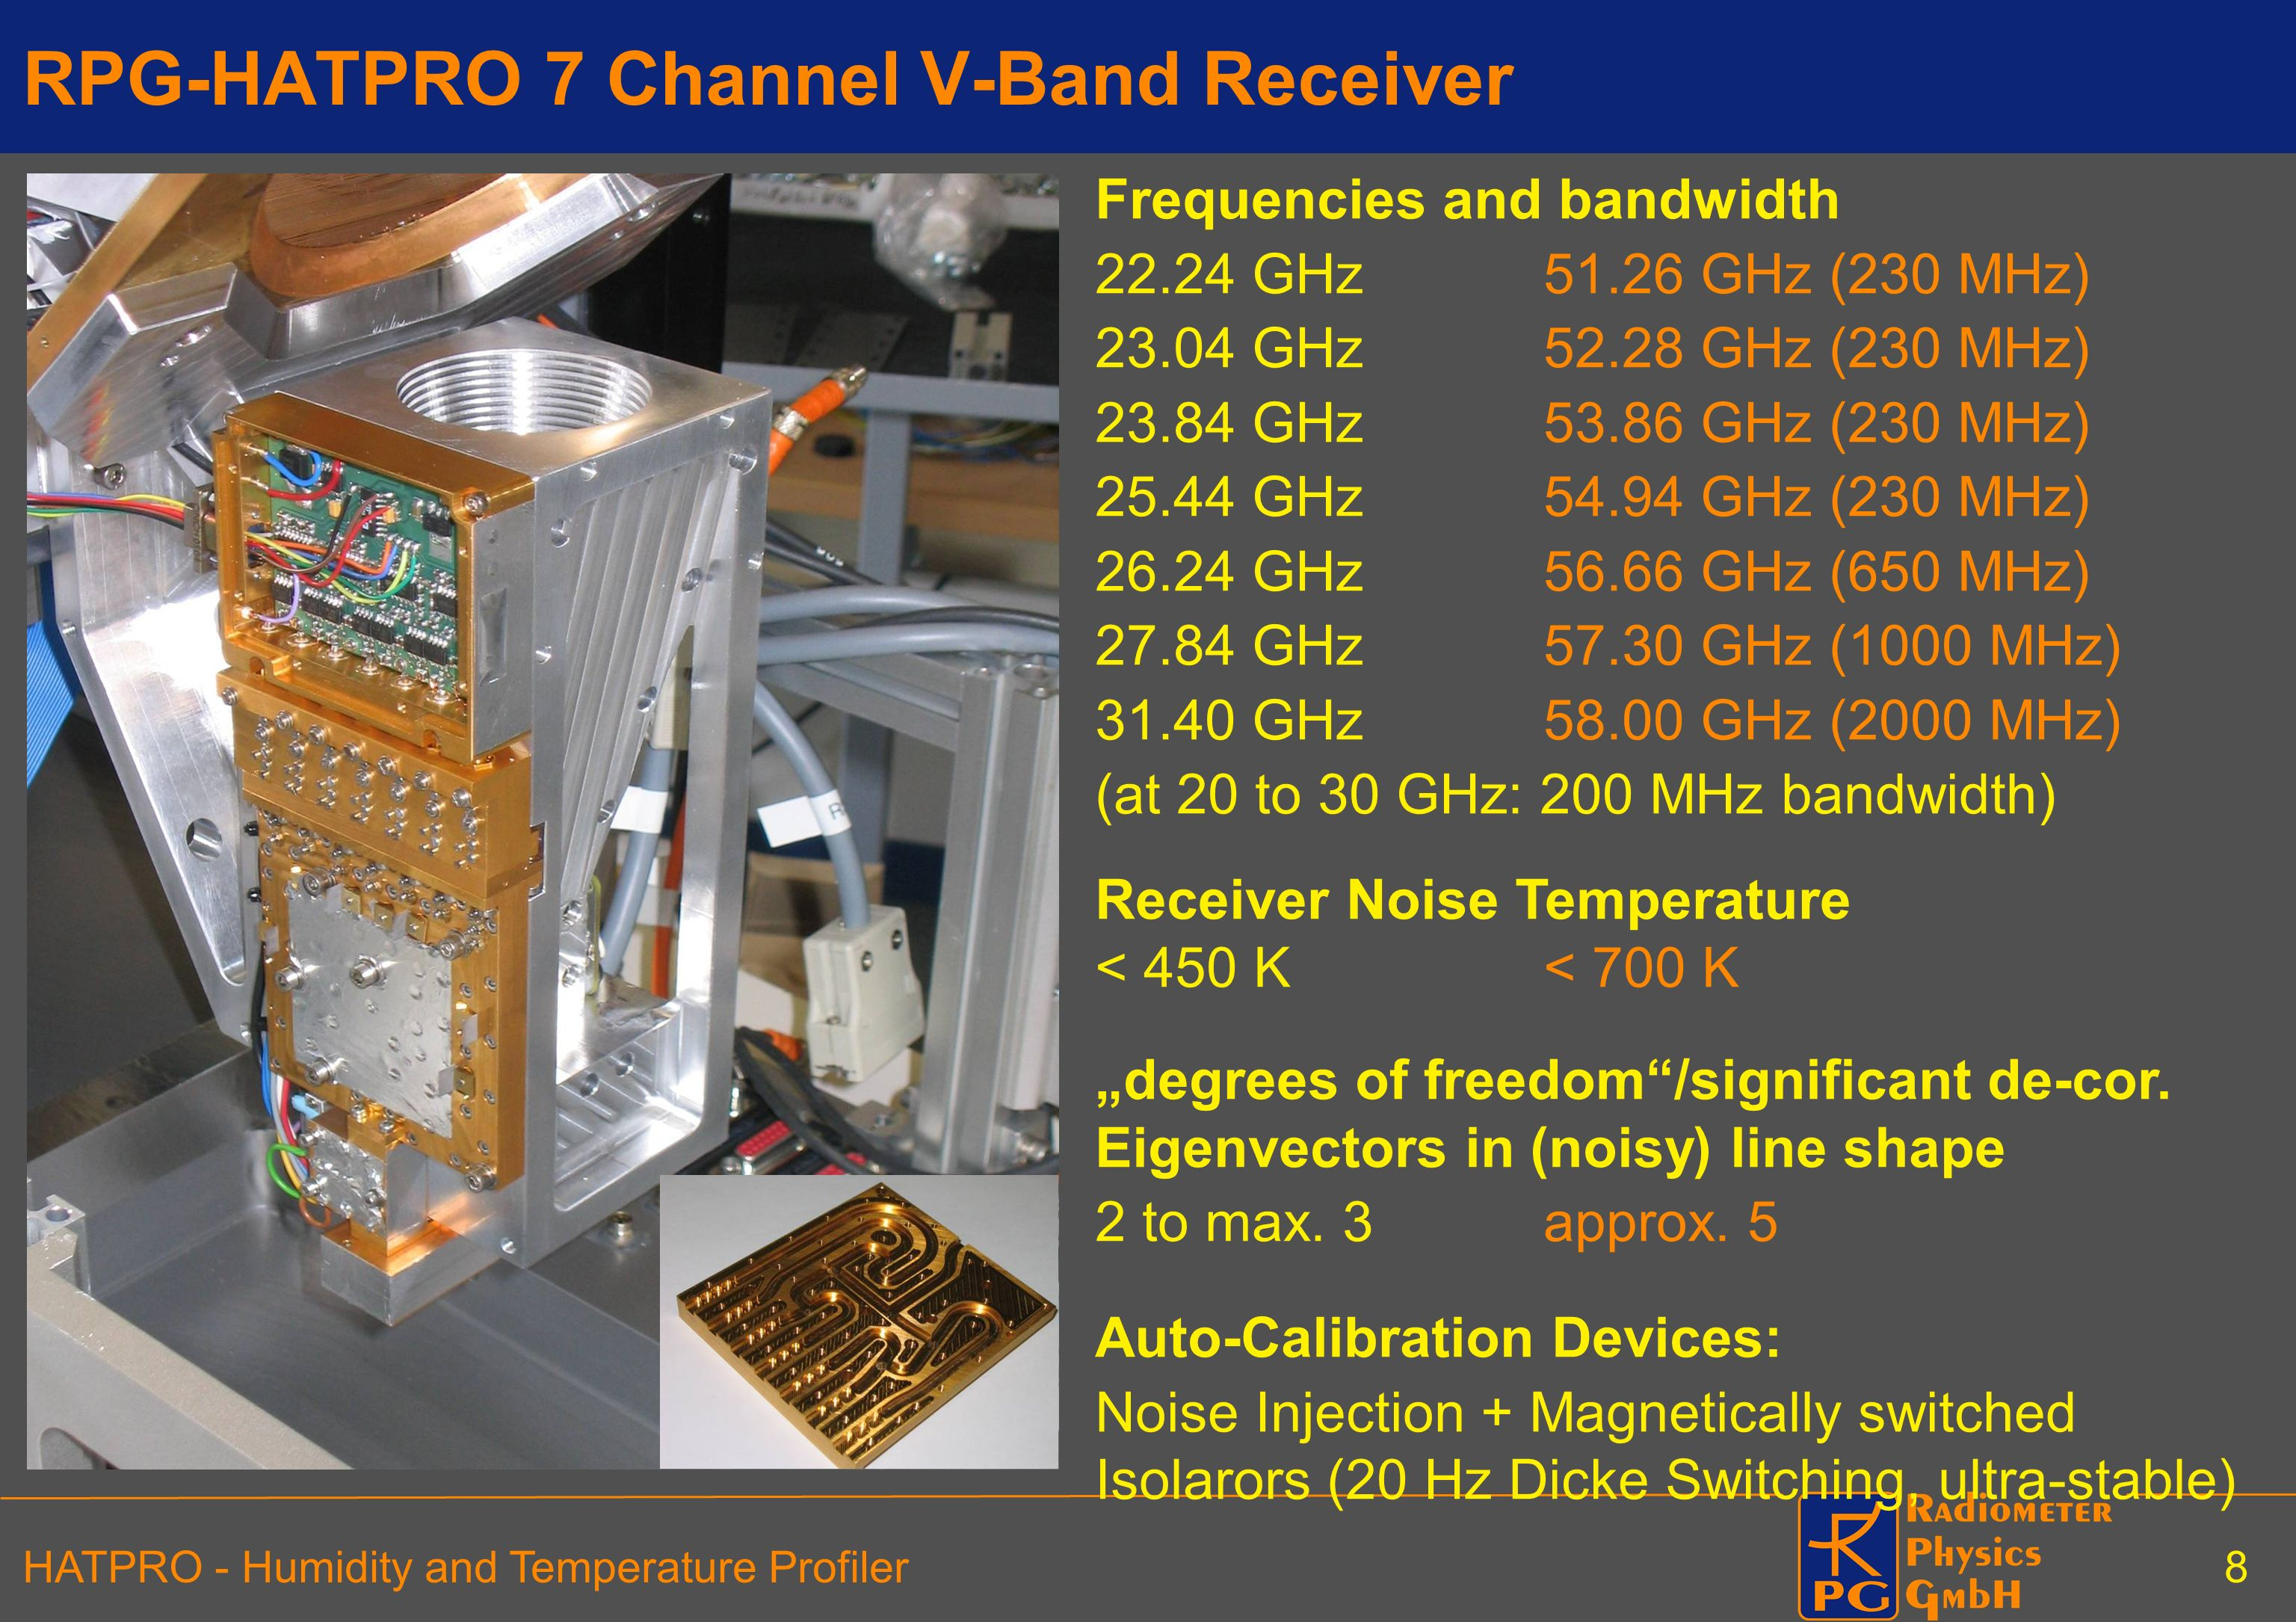 RPG-HATPRO 7 Channel V-Band Receiver